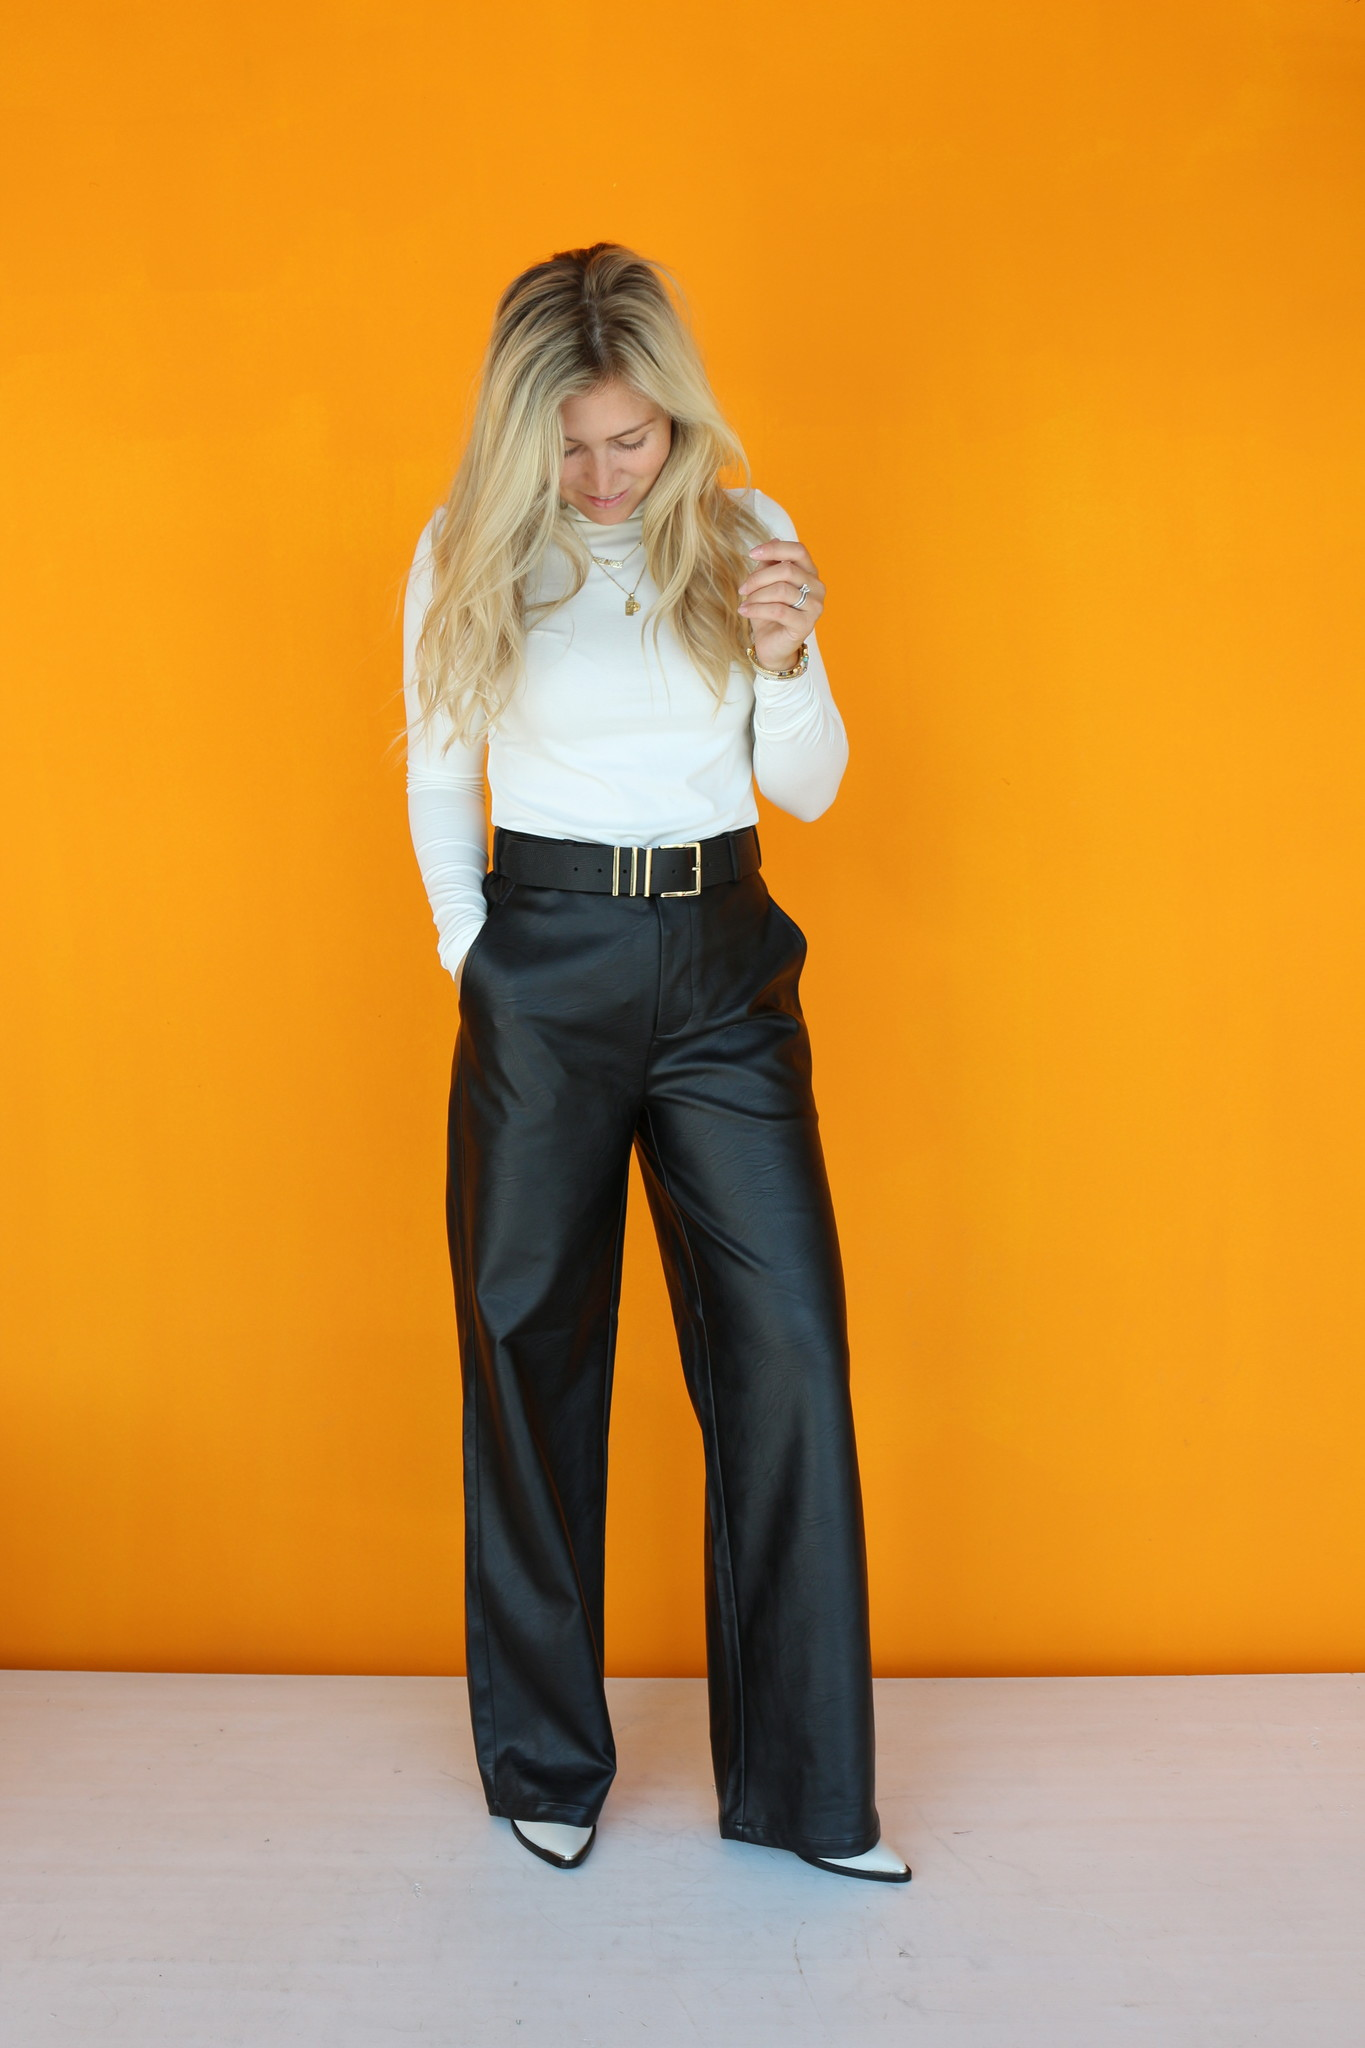 ALIX THE LABEL TURTLE NECK TOP FROM ALIX THE LABEL